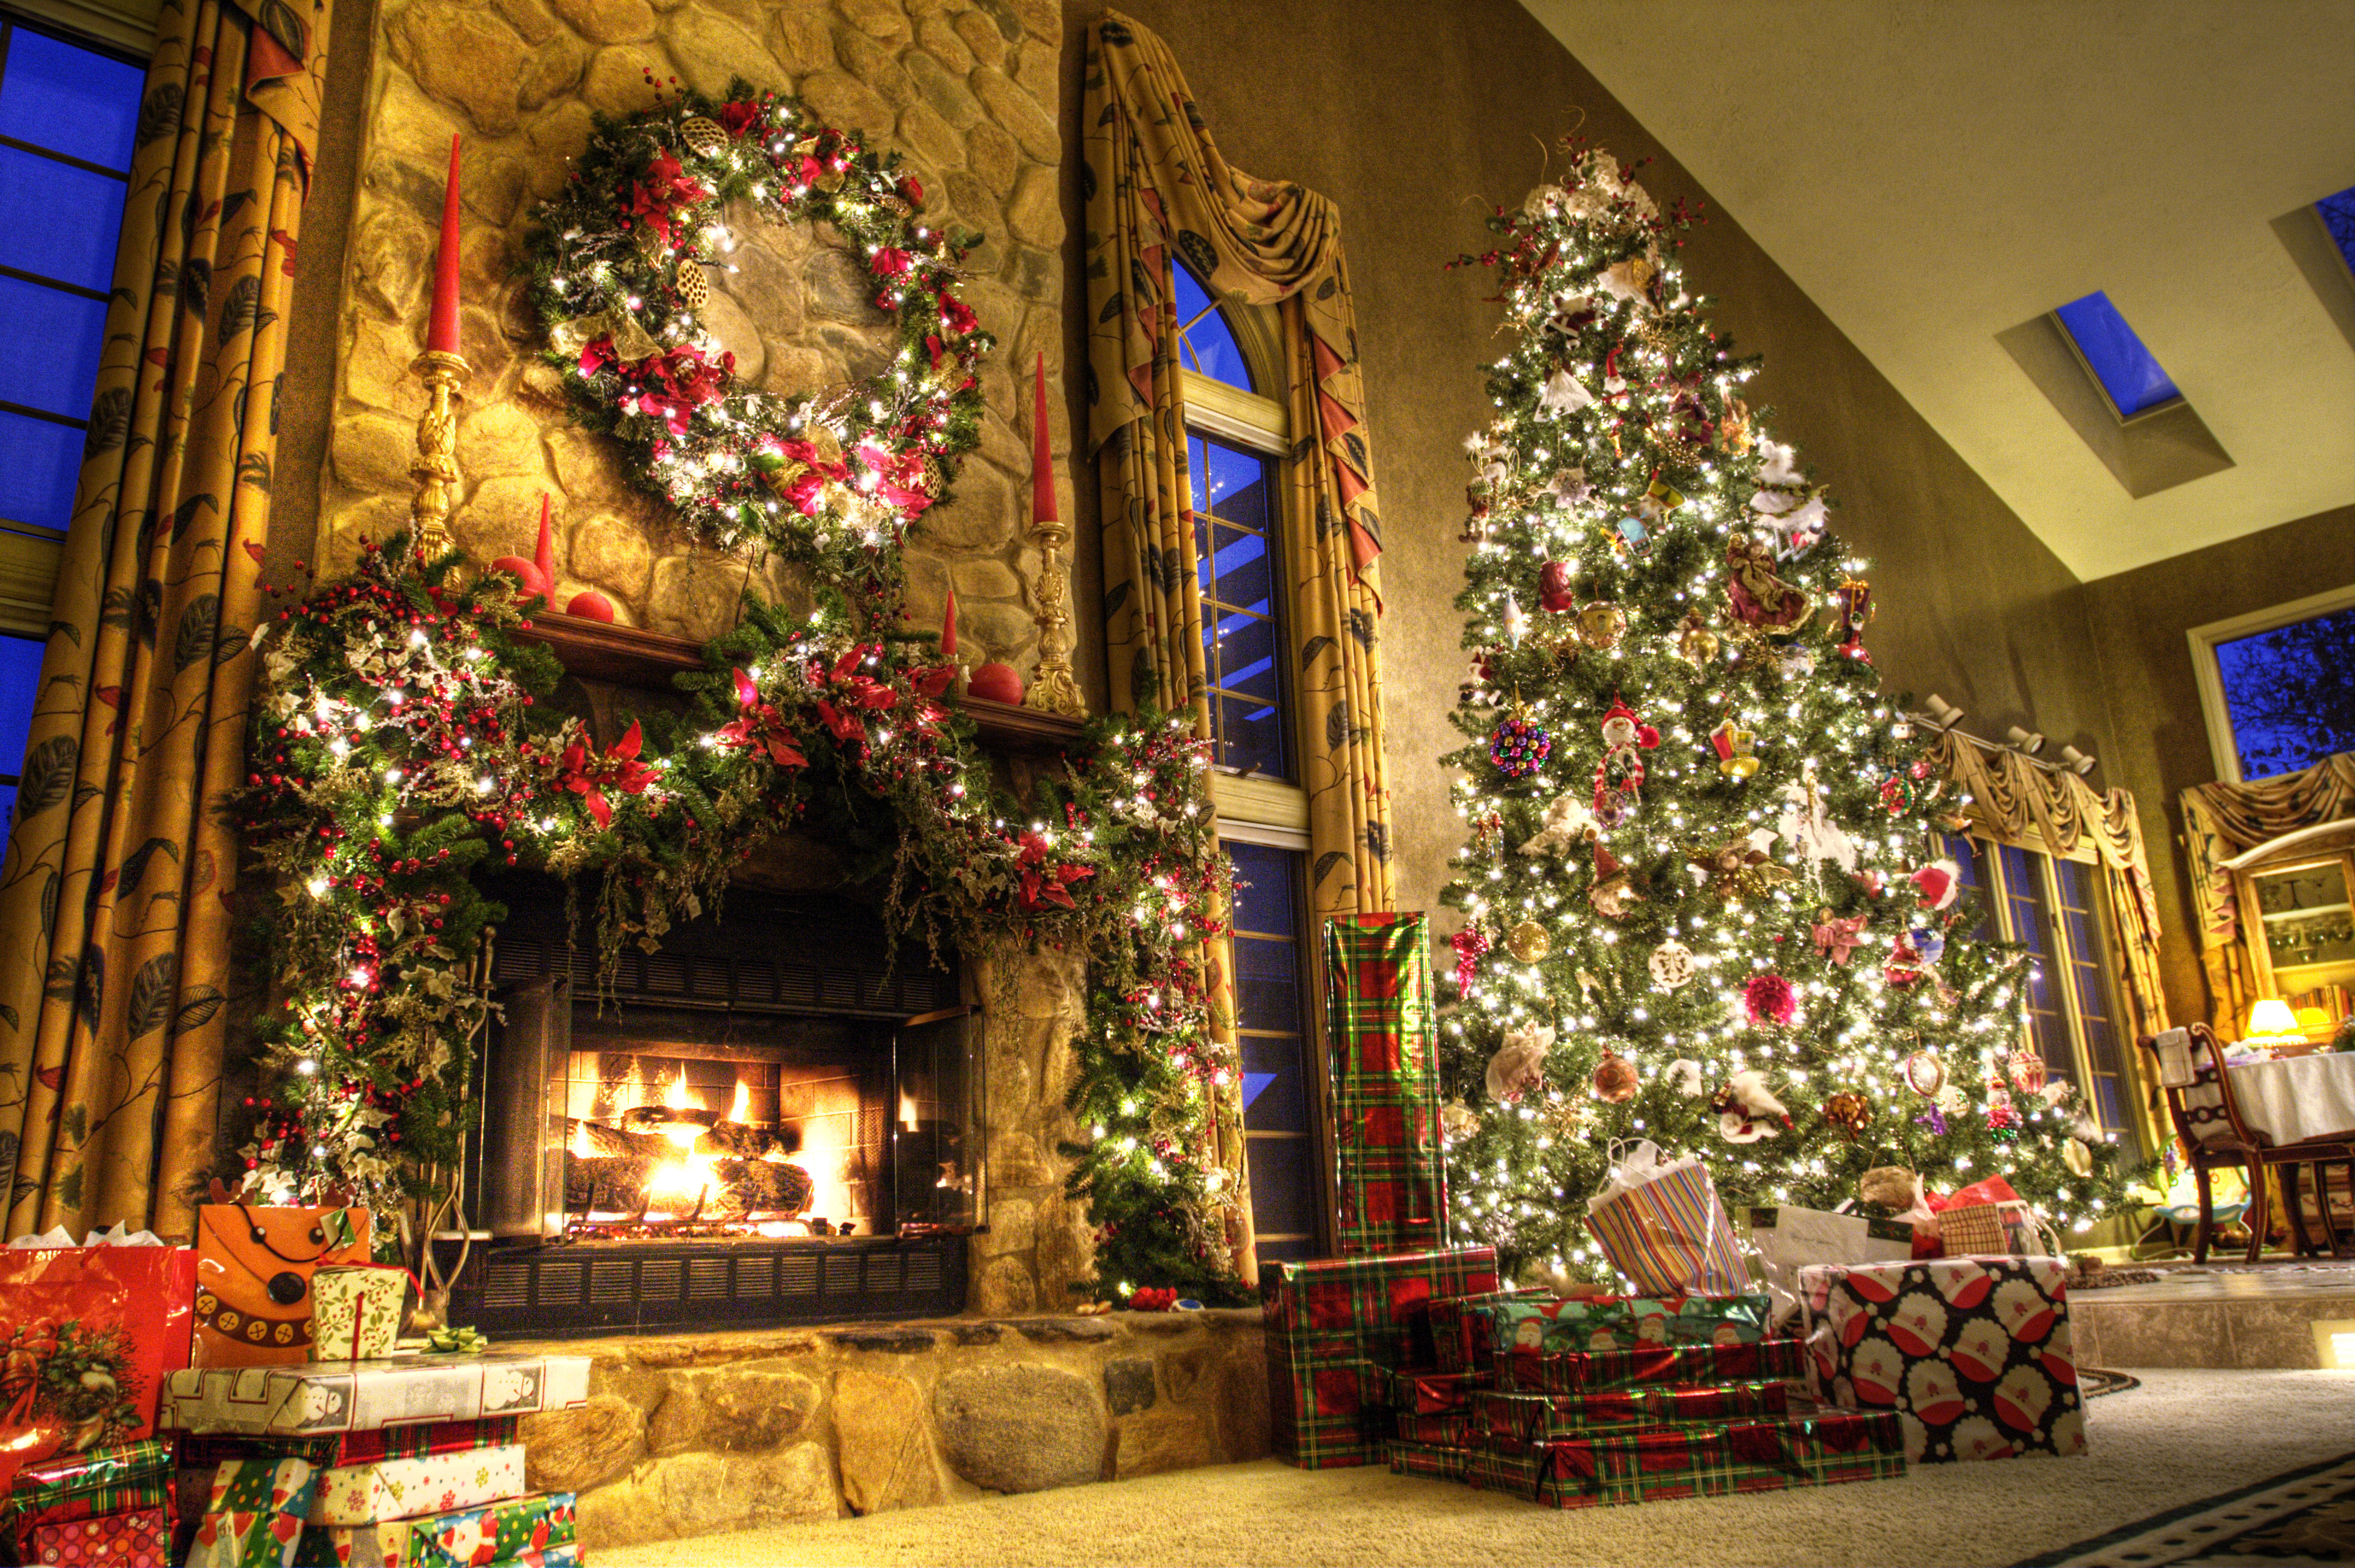 Toys Lights Christmas tree fireplace room wallpapers and 3908x2602